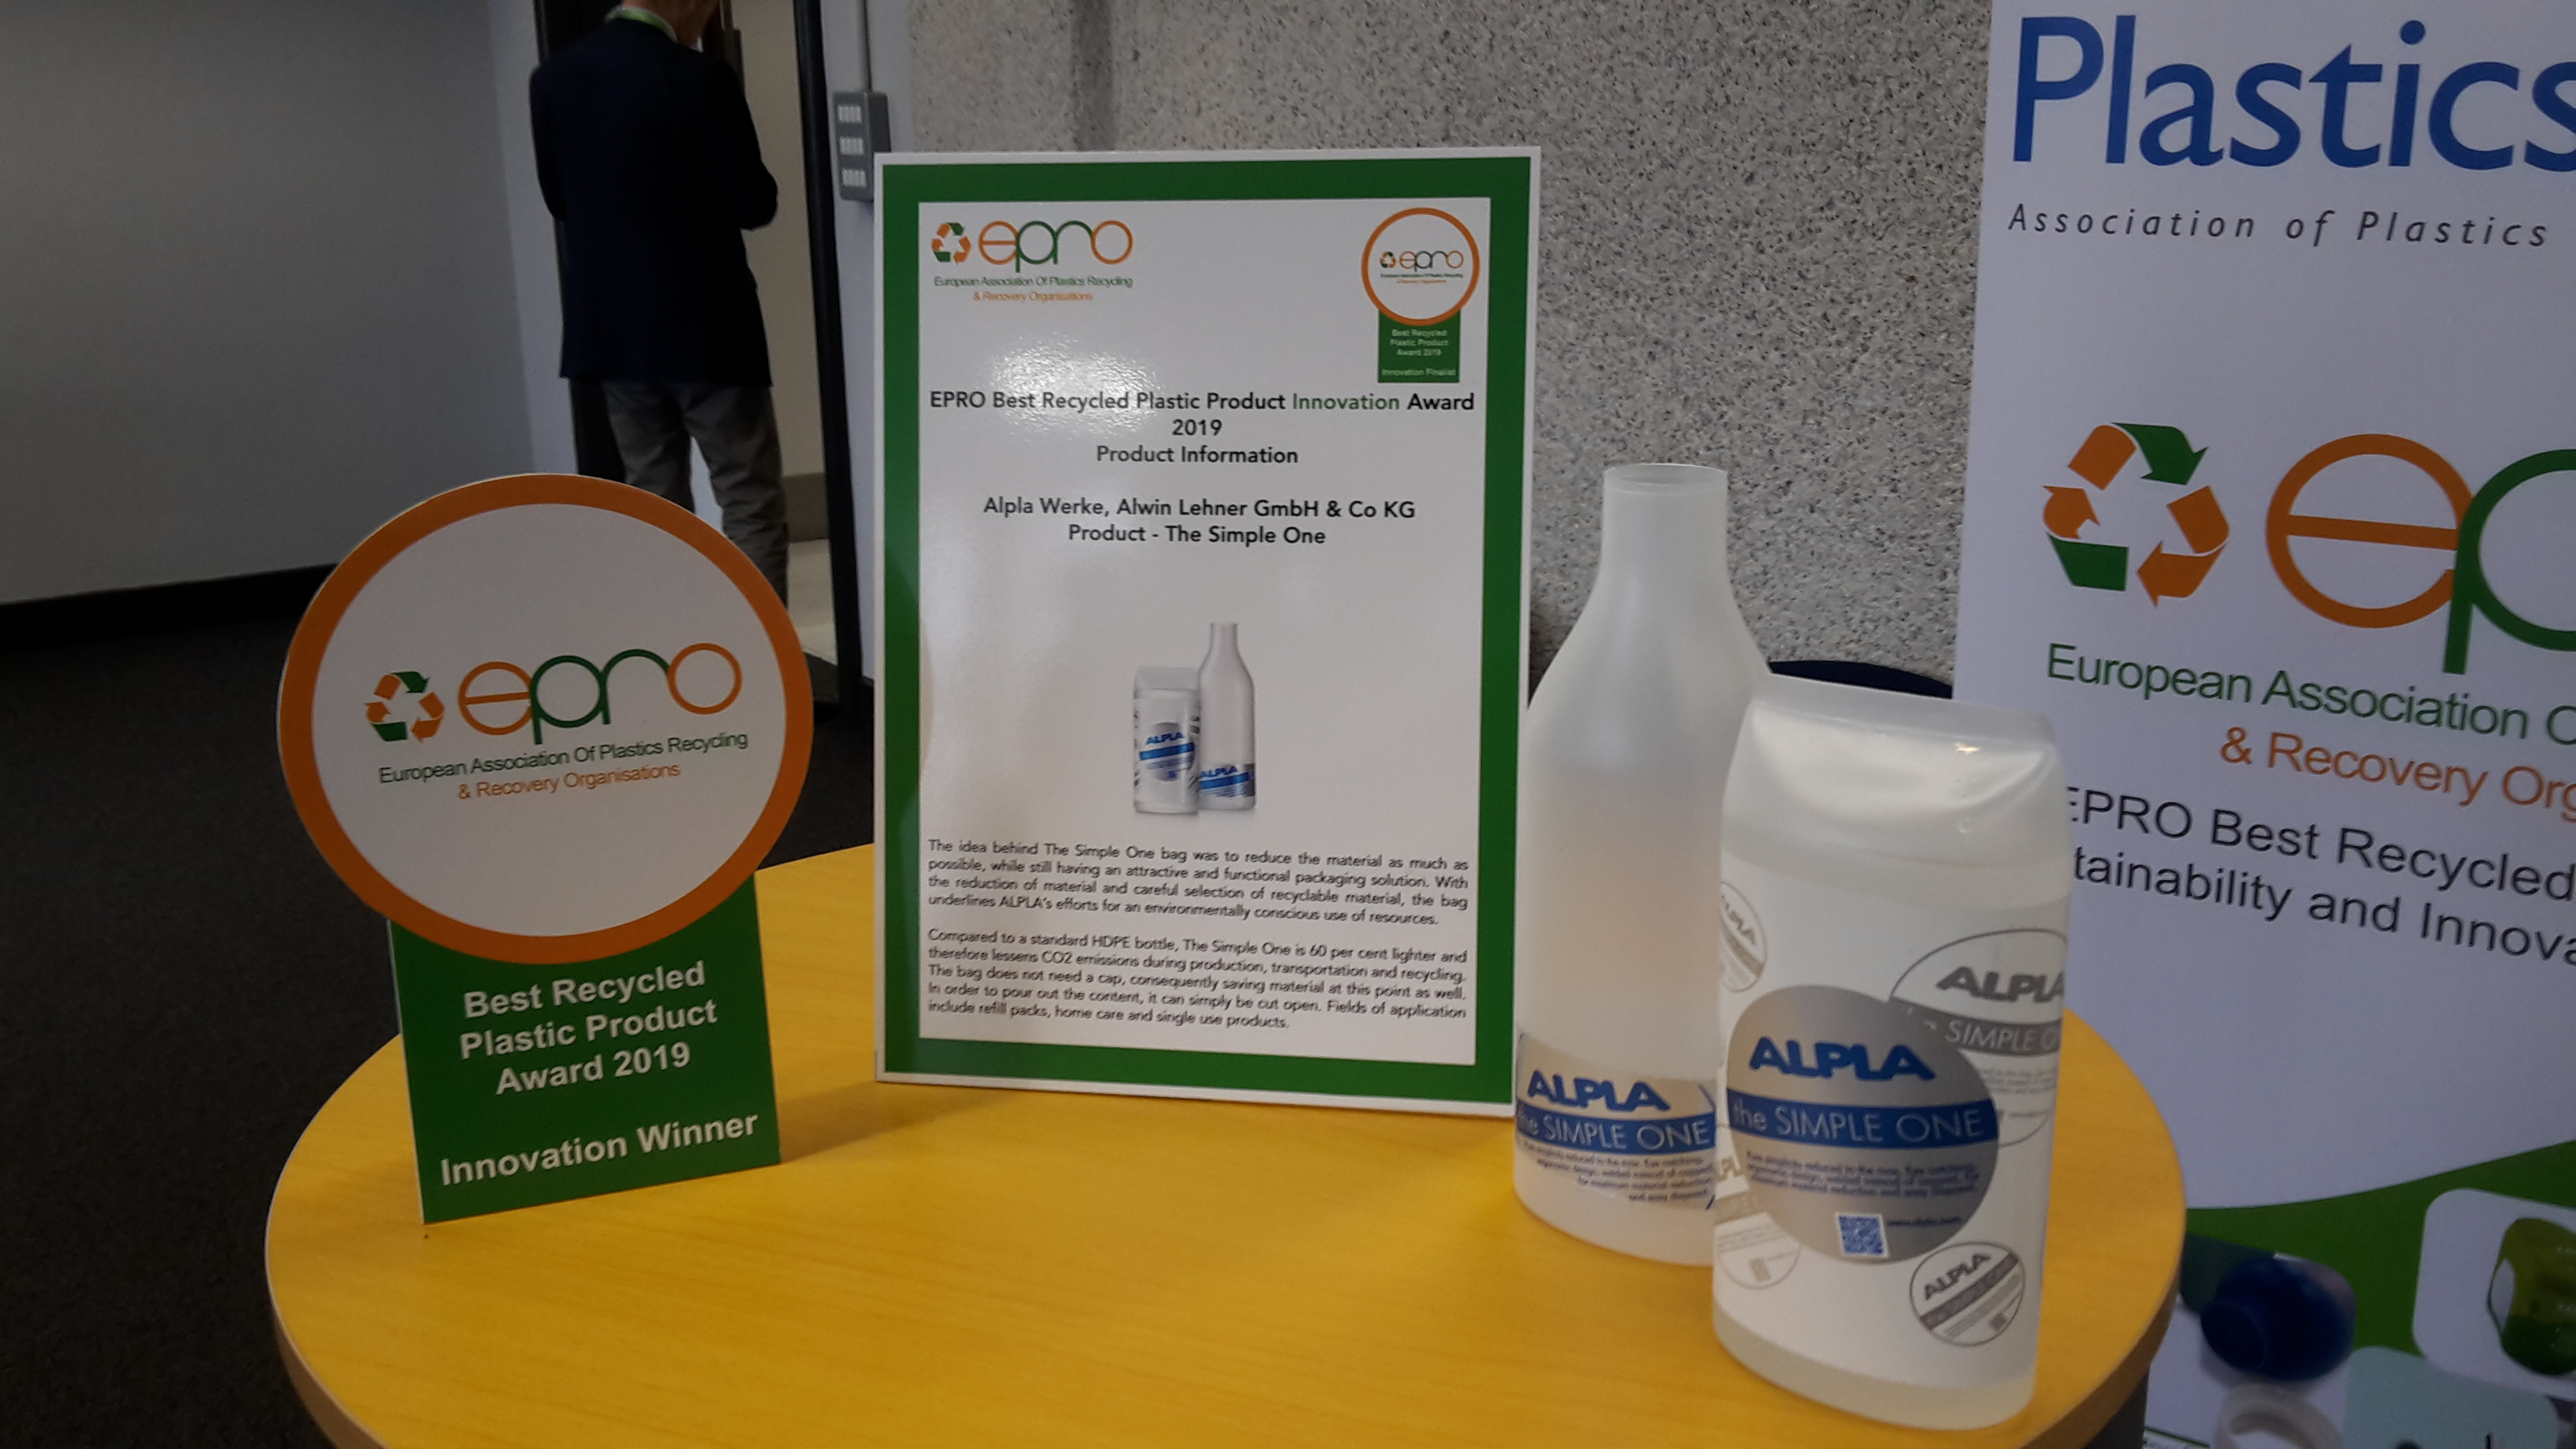 EPRO - Best Recycled Plastic Product